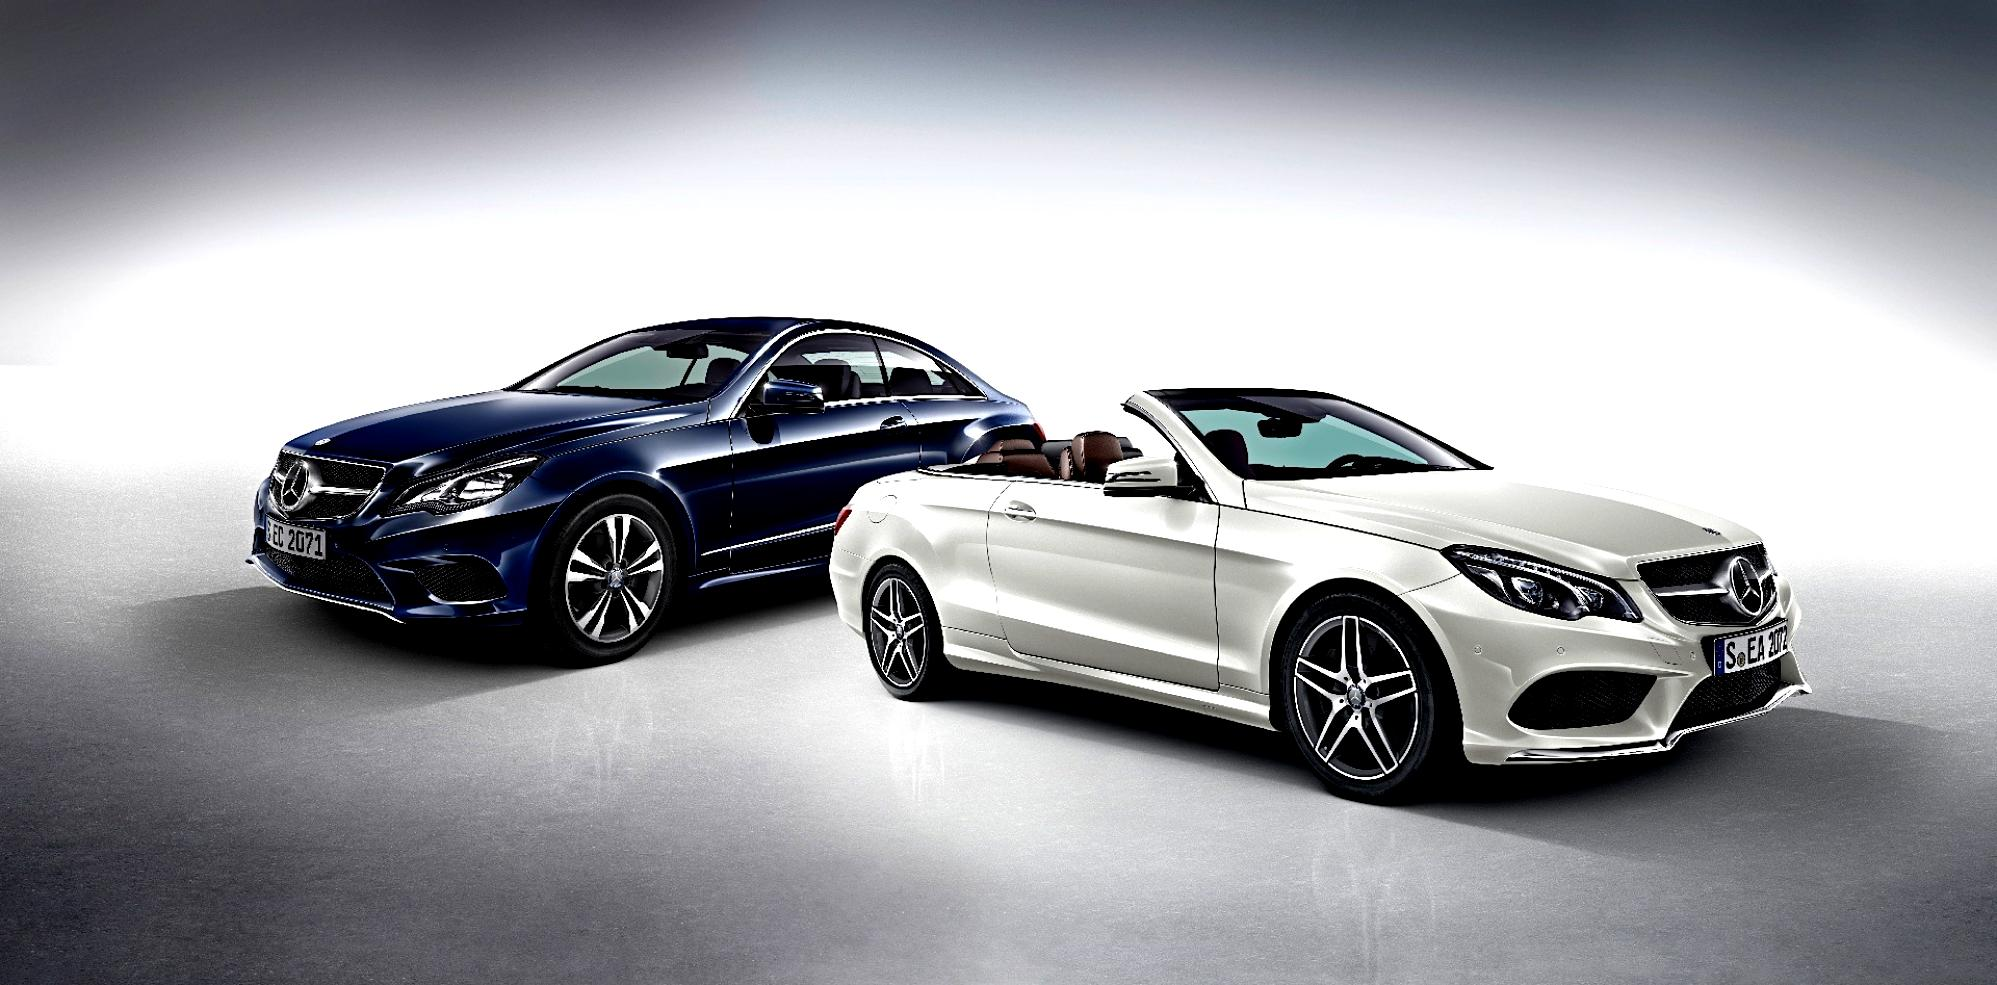 262578743254 in addition 944258 besides Mercedes Clk W208 Bippu Style furthermore Mercedes Benz E Klasse Cabriolet A207 2013 furthermore 181446. on mercedes benz clk cabrio a208 1998